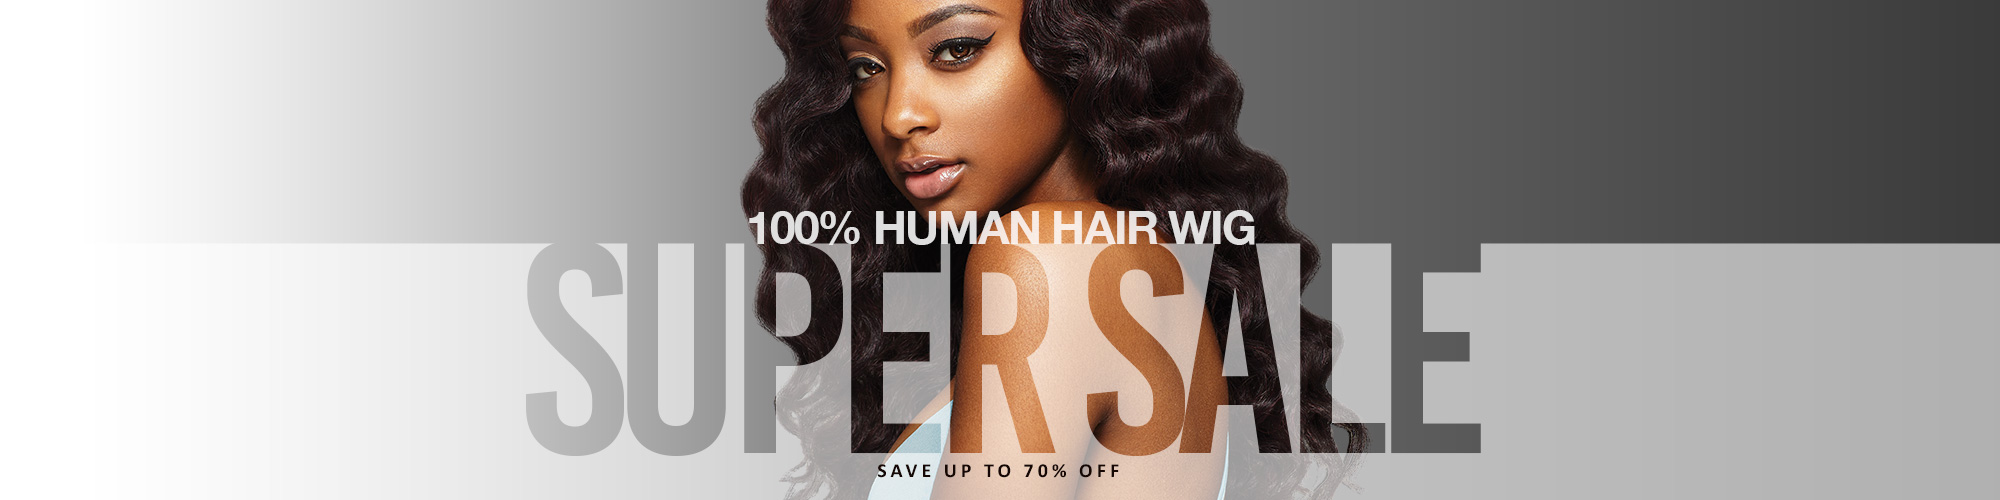 SUPER SALE - HUMAN HAIR WIGS